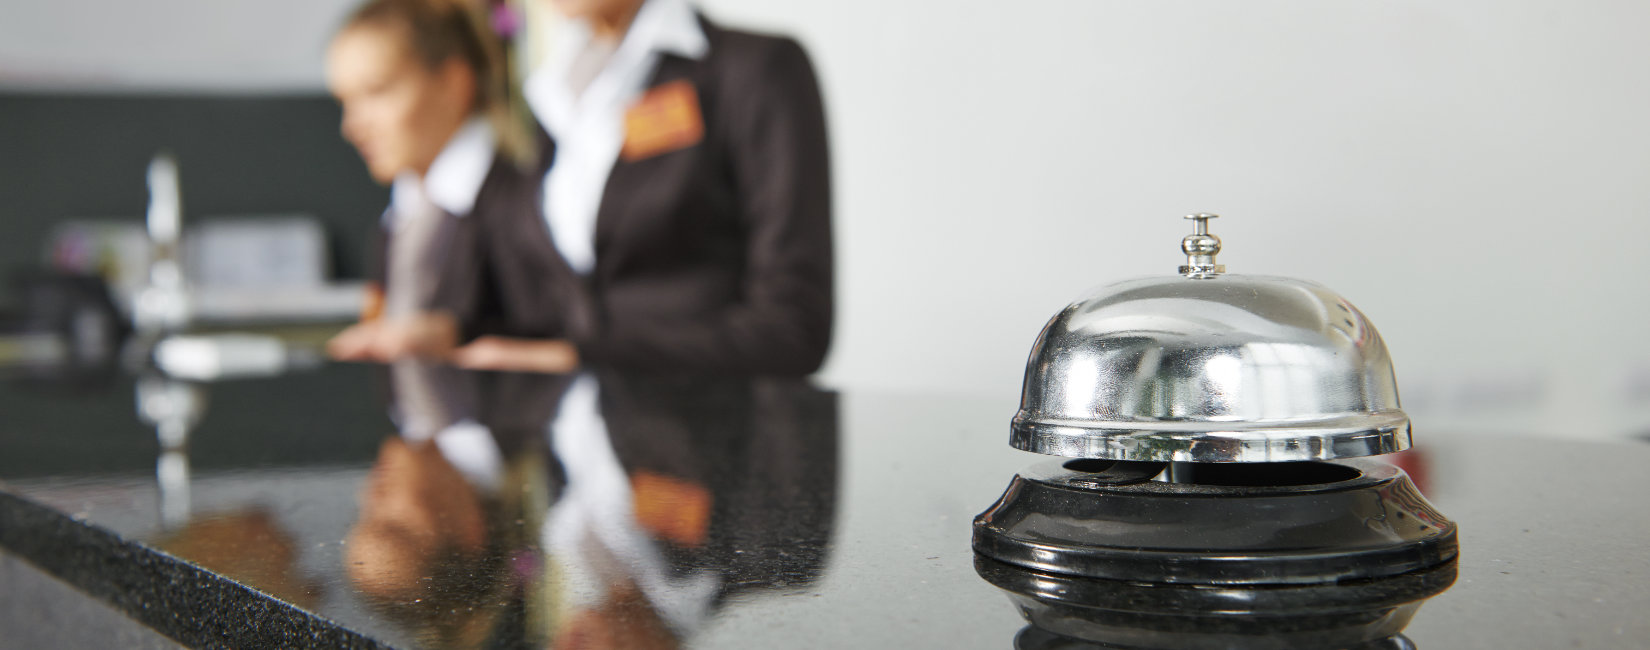 Customer service training online suitable for the hospitality industry